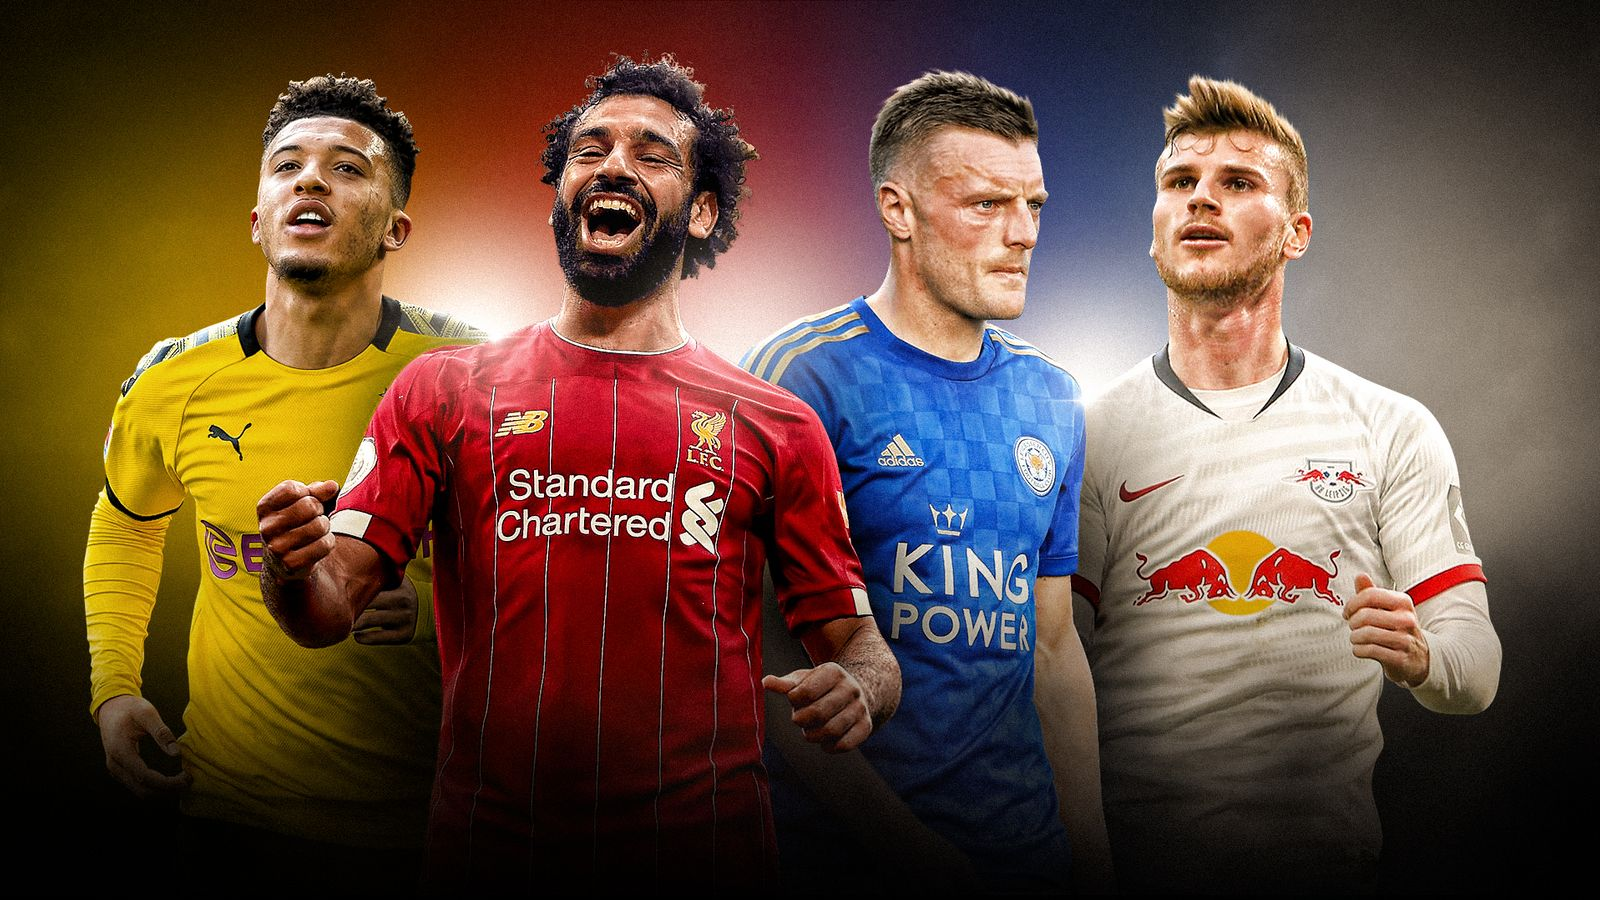 Bundesliga Return Which Club Should You Follow Based On Your